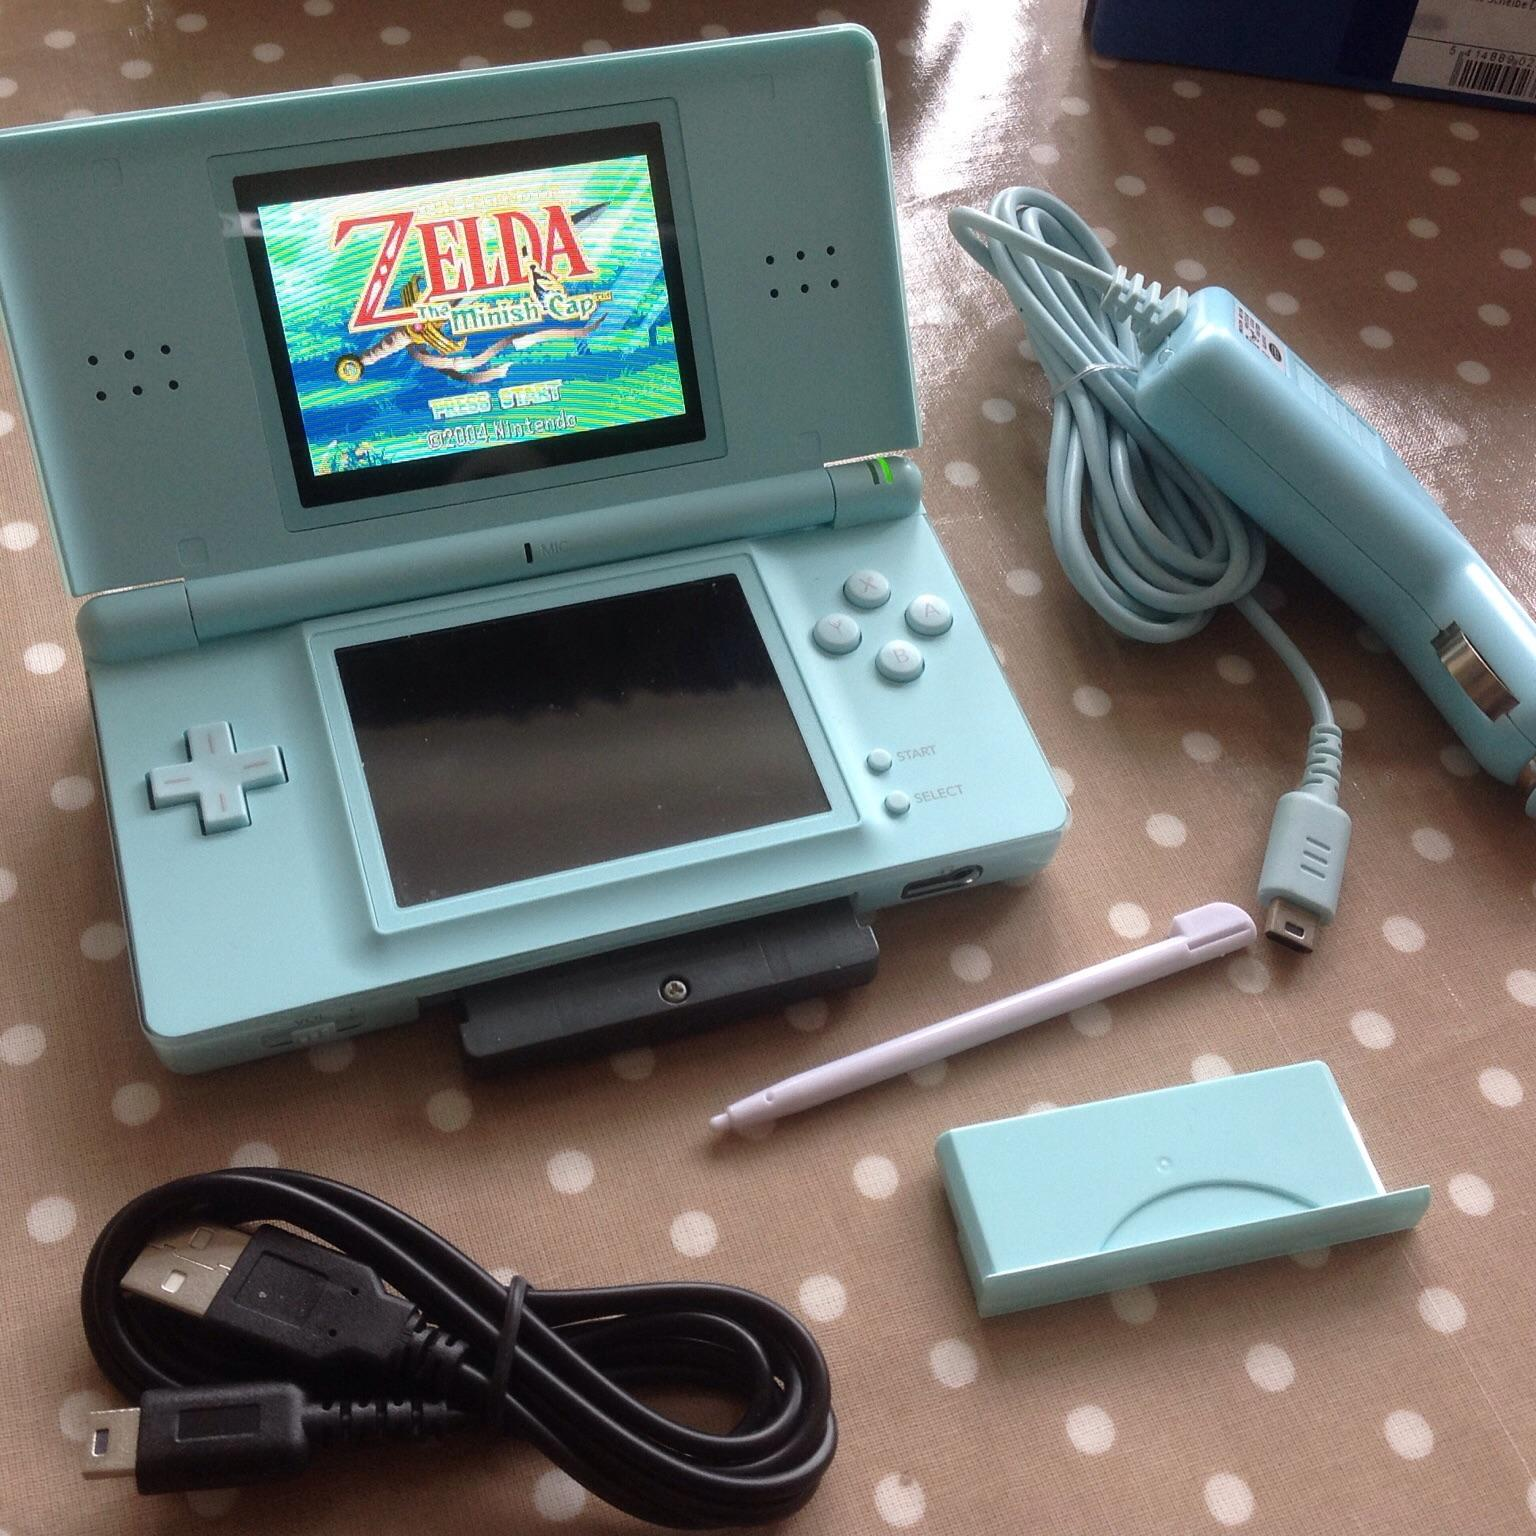 Nintendo Ds Lite Turquoiseice Blue In Nn15 Kettering For 20 Shpock